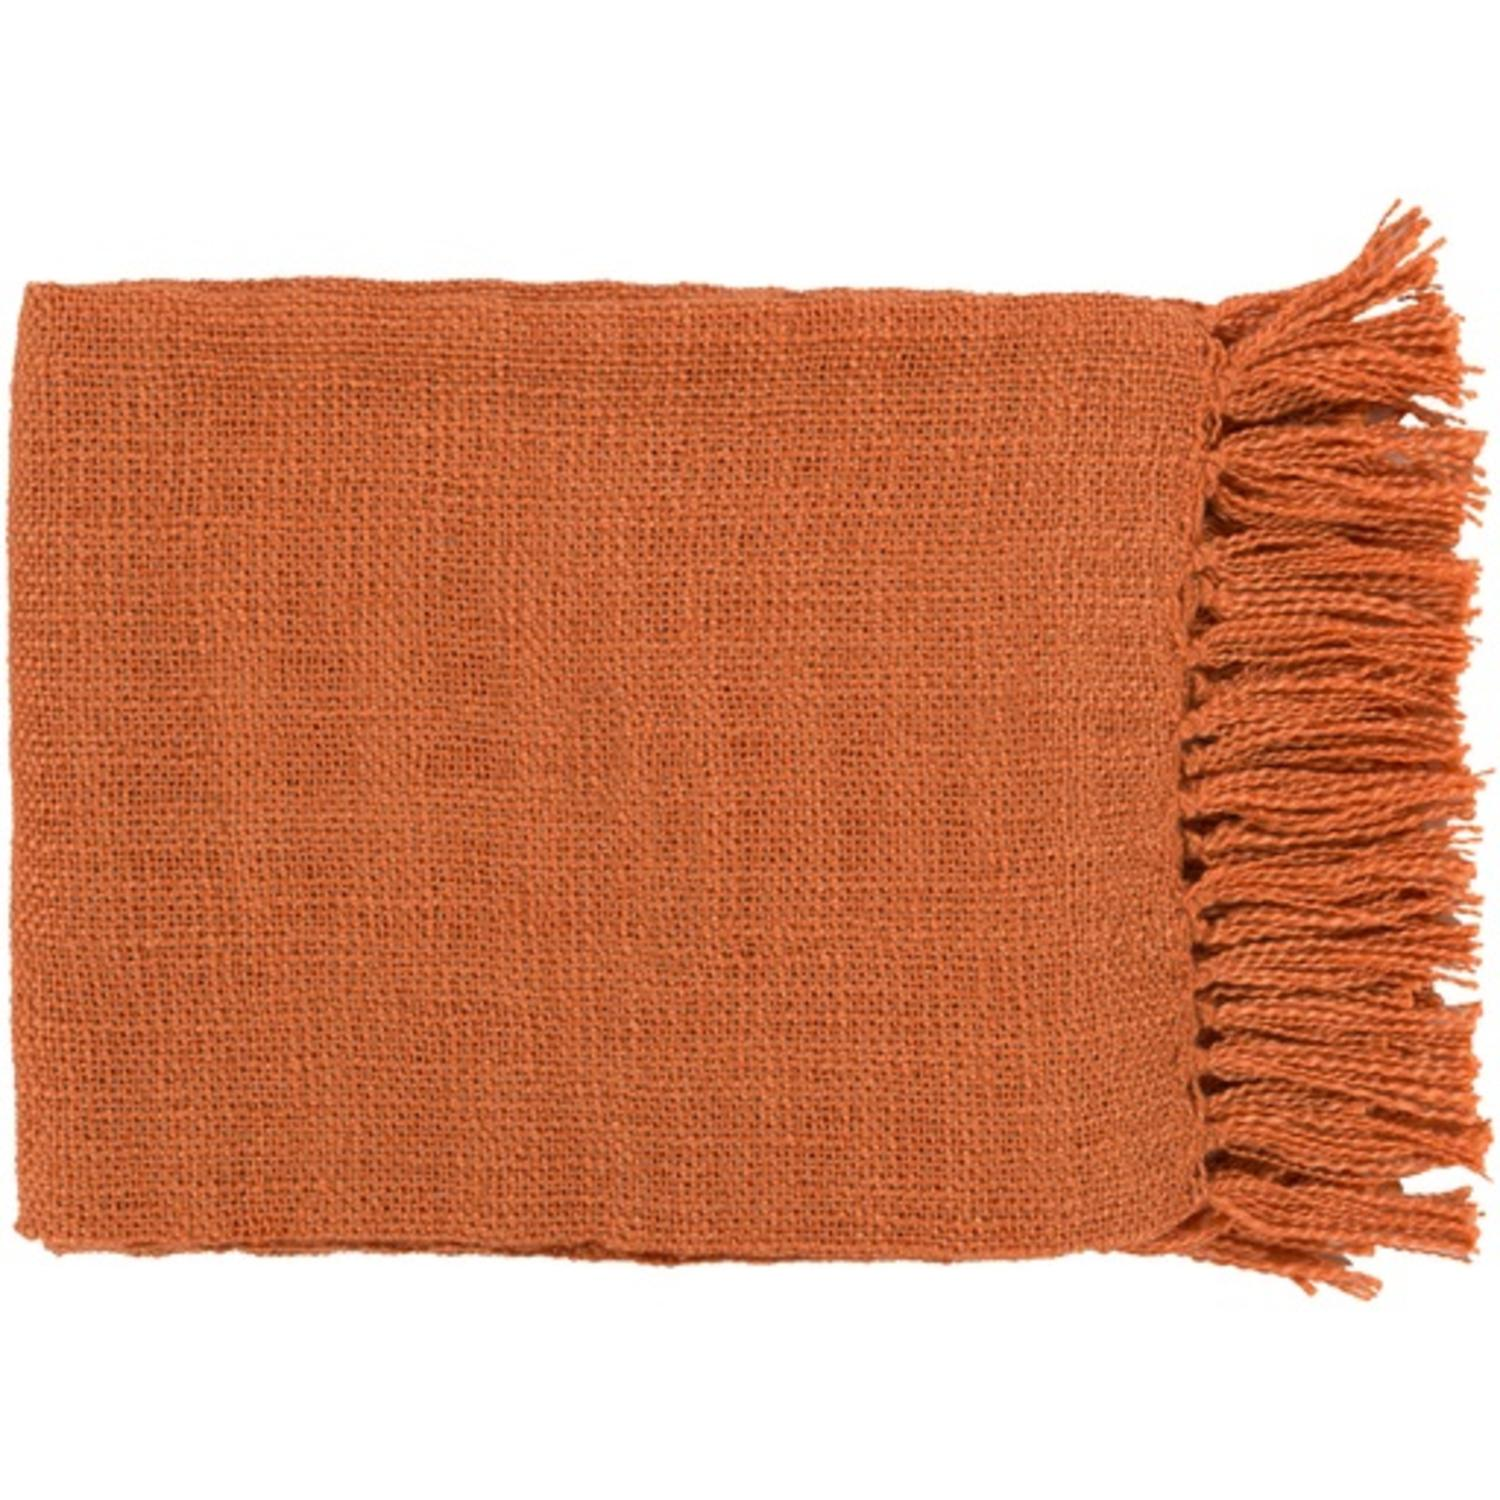 "59"" x 51"" Warm Weaves Burnt Orange Fringed Throw Blanket"